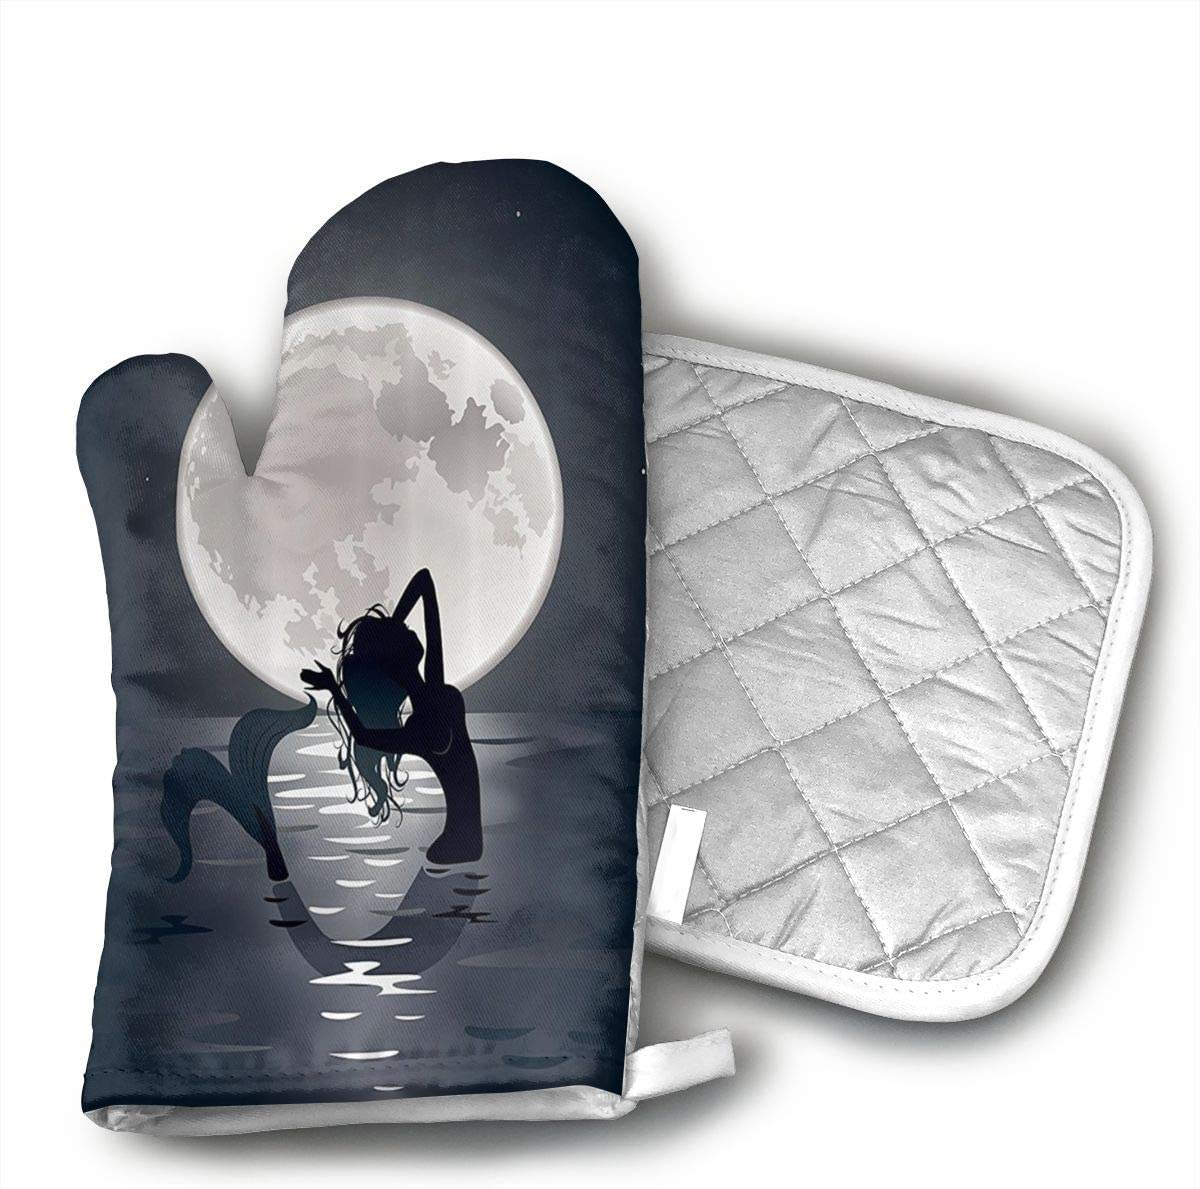 IOLGOQ Mermaid Singing at Night Silhouette Full Moon 1 Oven mitt and 1 Pot Rack Heat Resistant up to 250°C Non-Slip Gloves for Kitchen, Cooking, Baking, Grilling